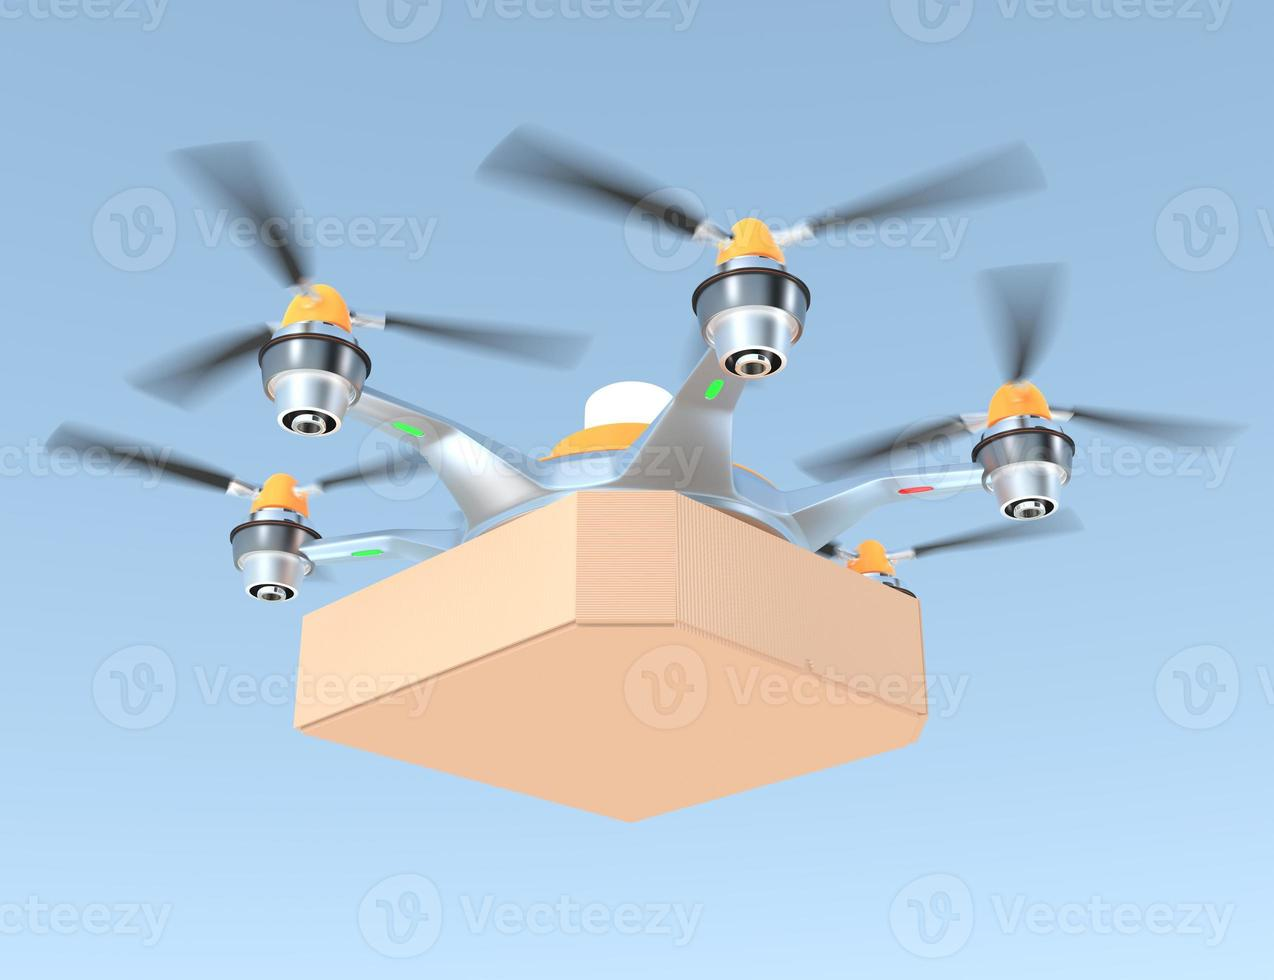 Air drone carrying single pizza box with copy space photo